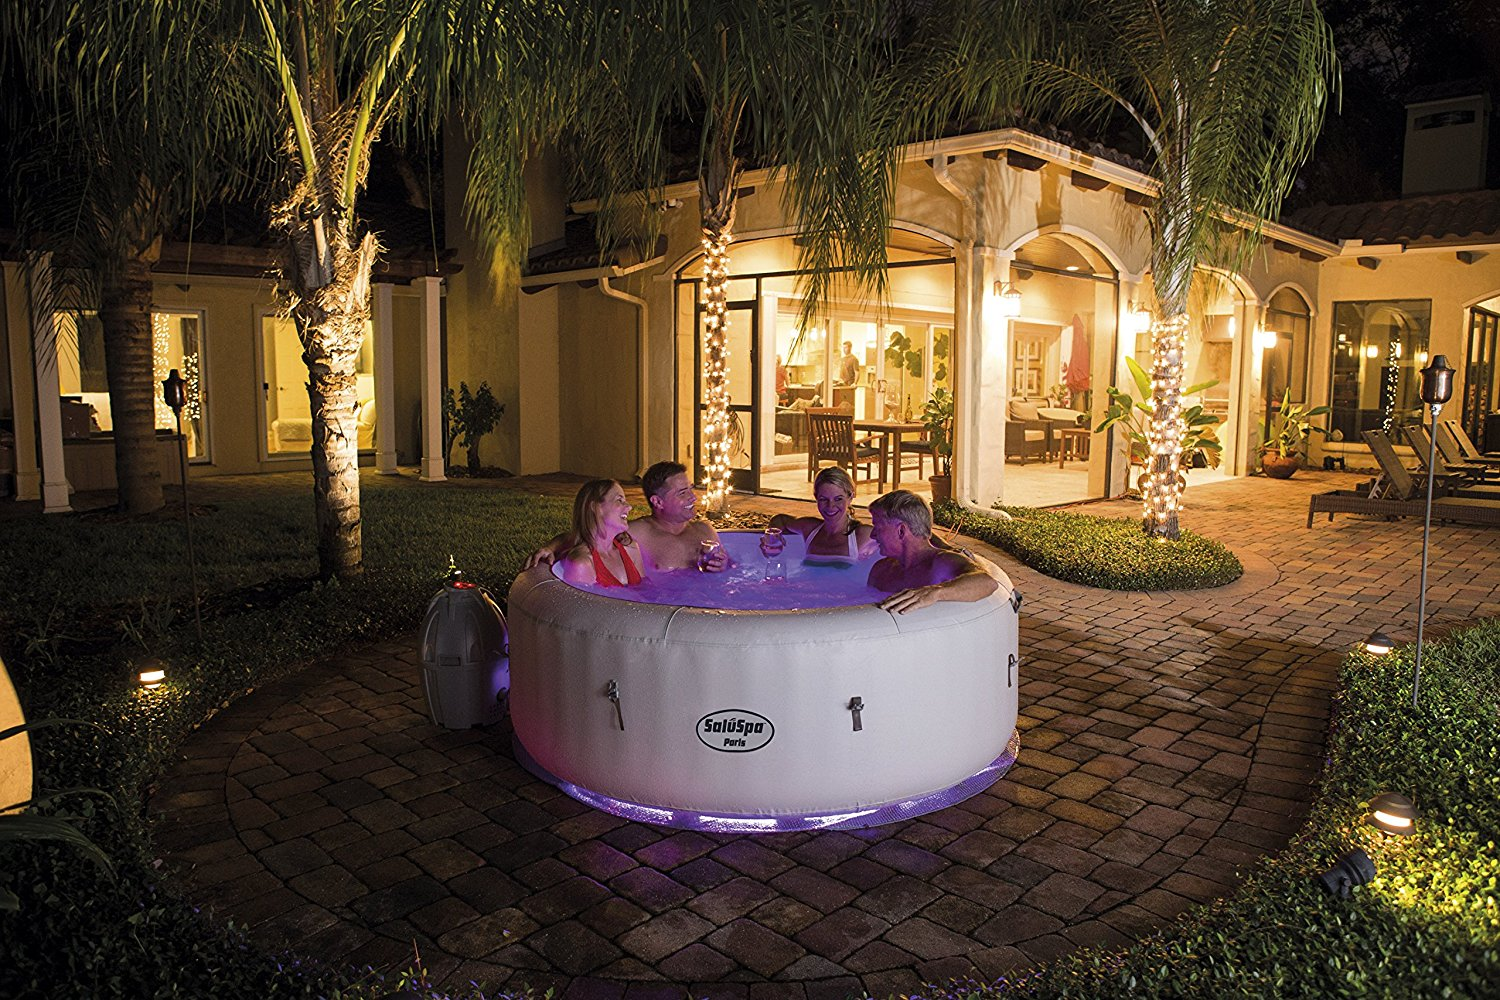 Inflatable Lazy Spa Hot Tub with lights - LED lights